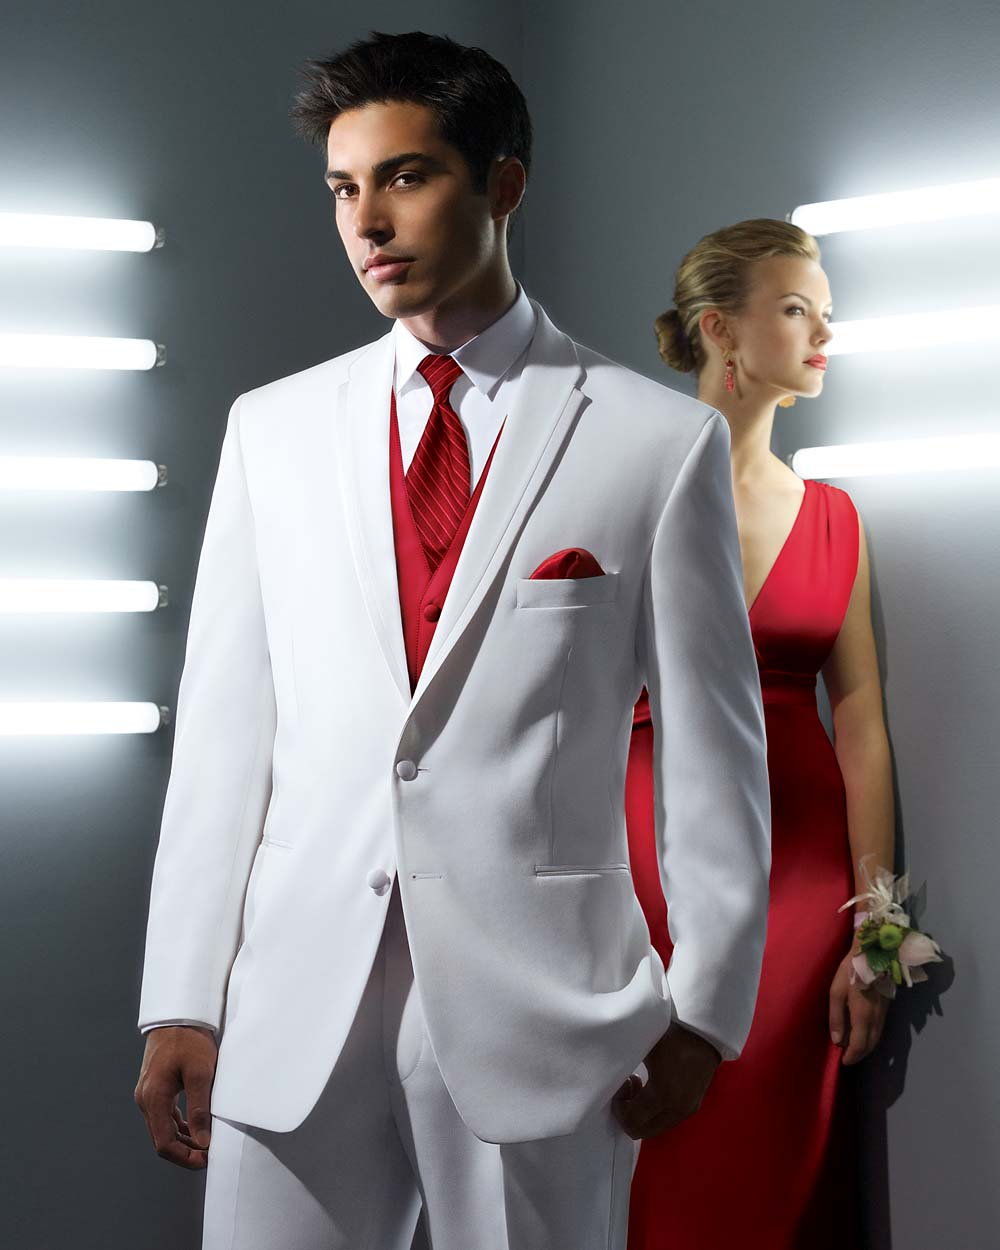 Wedding suit for Dress suits for wedding